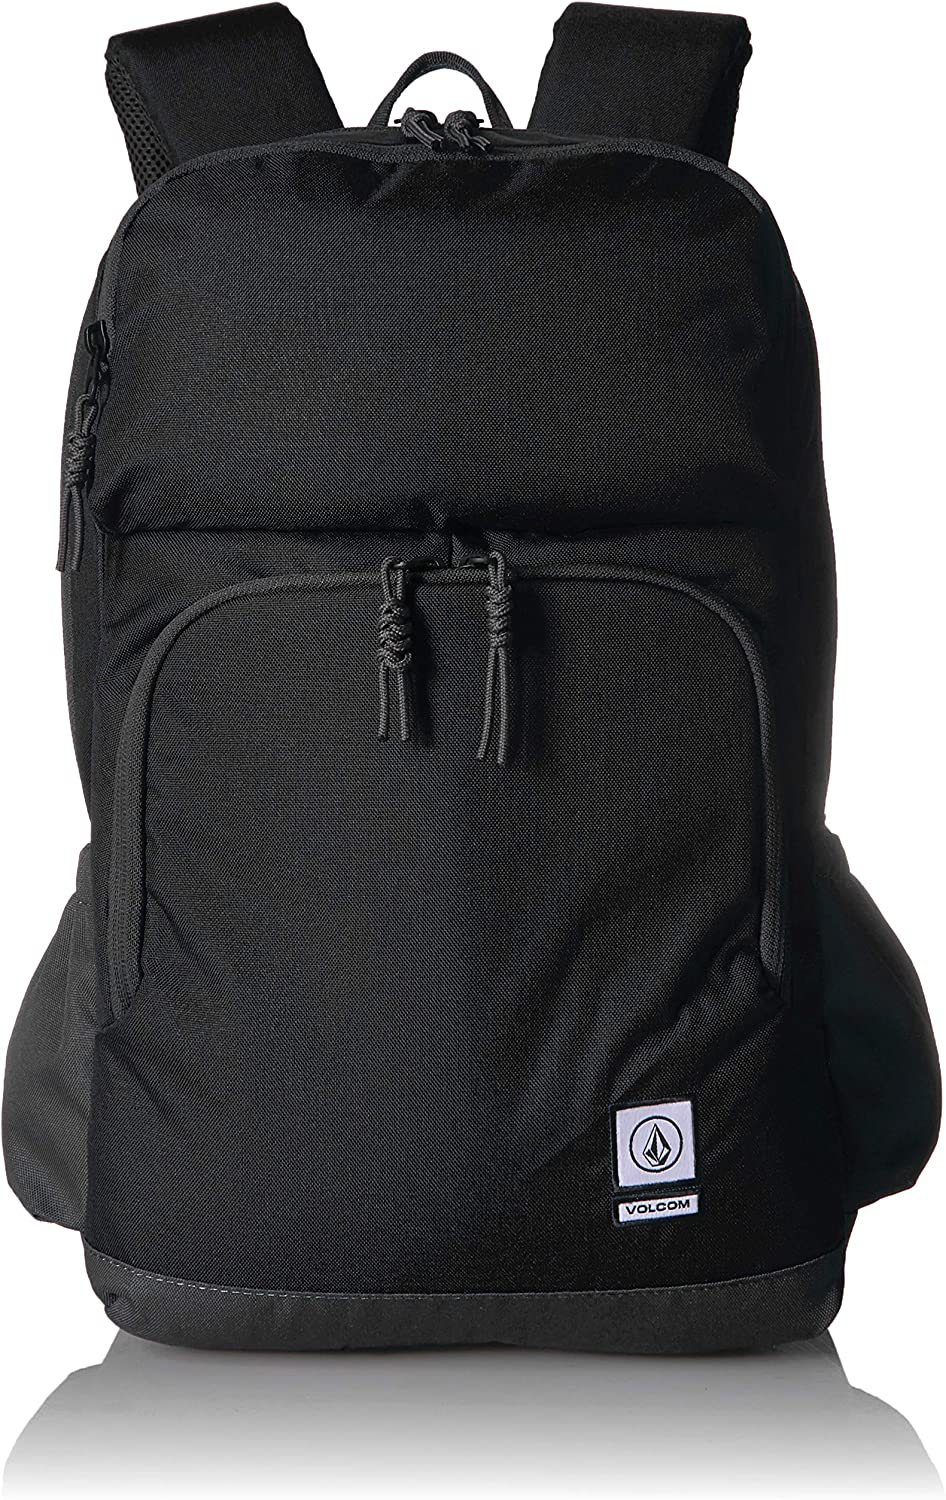 Volcom Men s Roamer Backpack